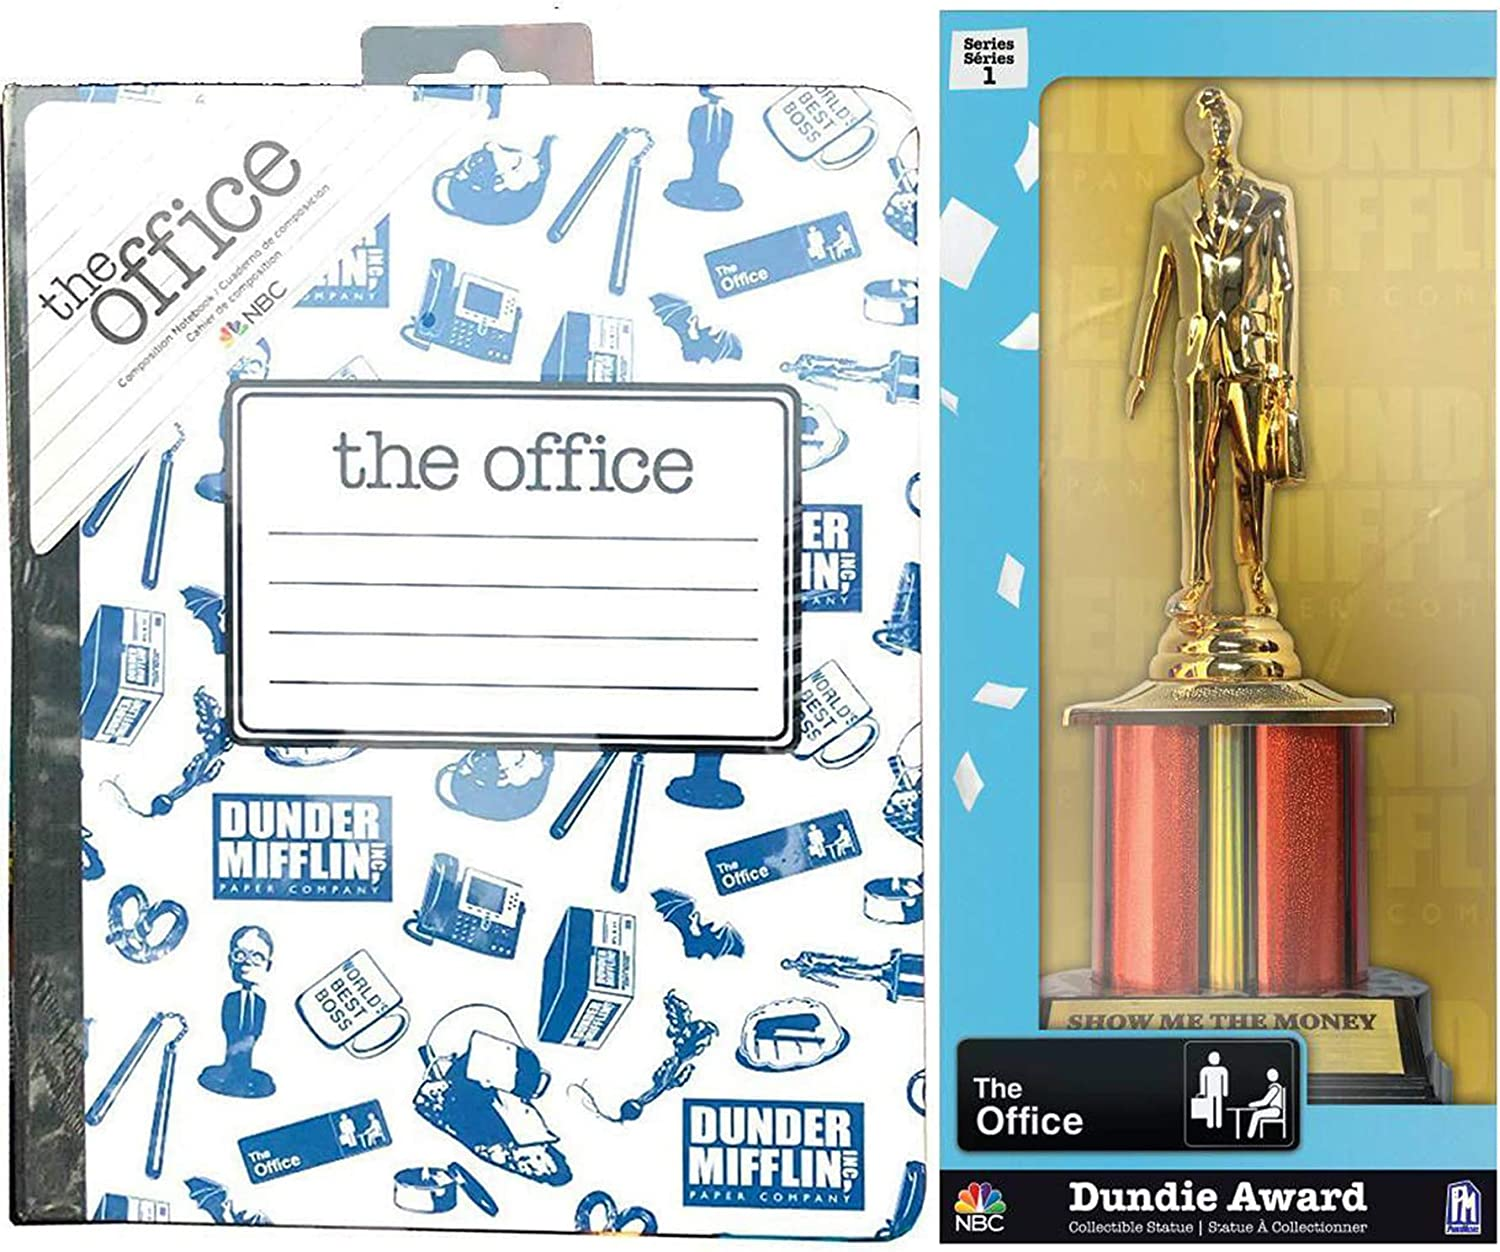 Award The Office Manager Figure Collectible Bundled with NBC Dunder-Mifflin Trophy The Dundie + NBC Series Notebook Hardcover Composition 2 Items